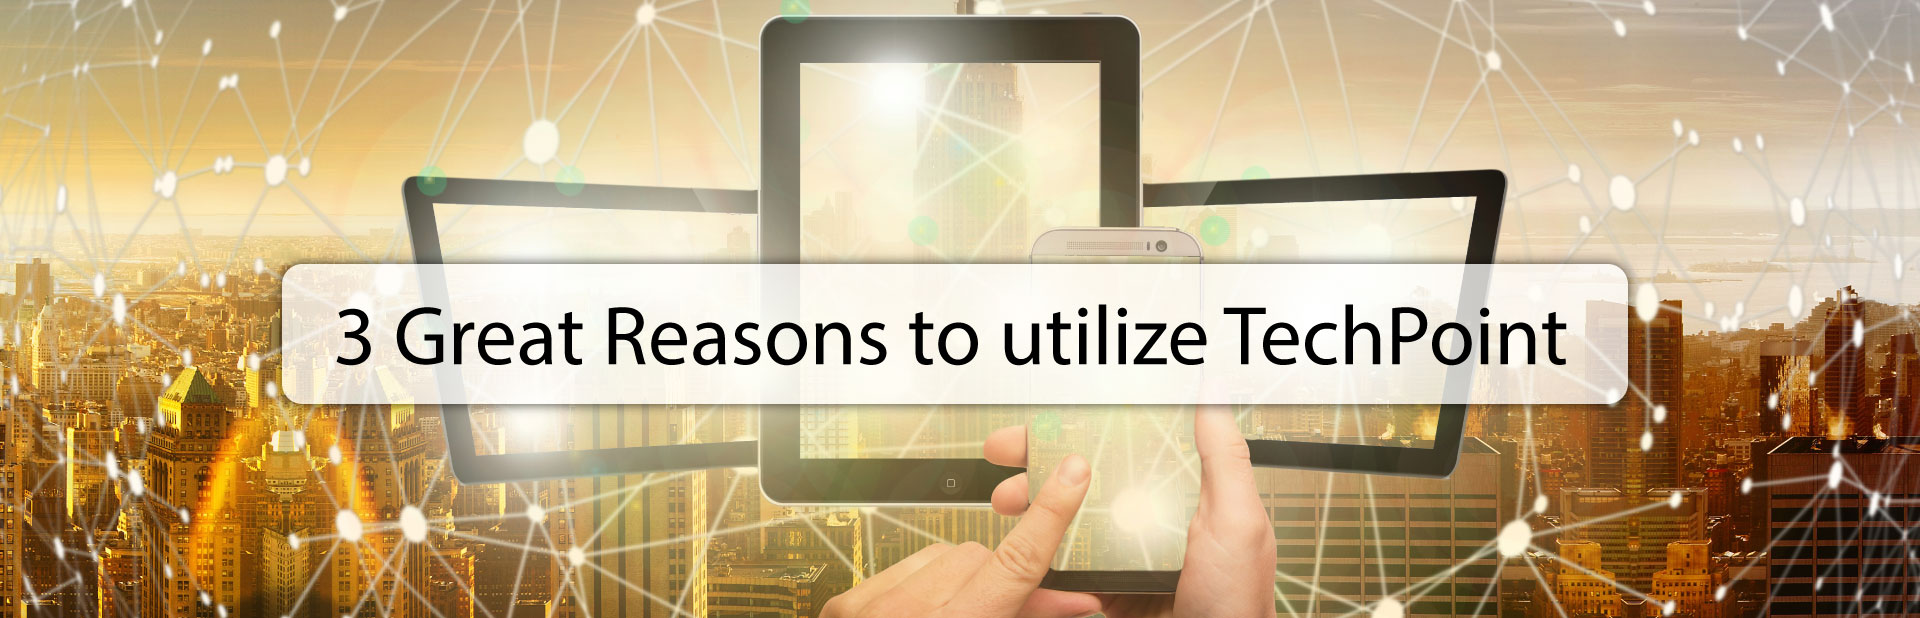 3 great reasons to use TechPoint